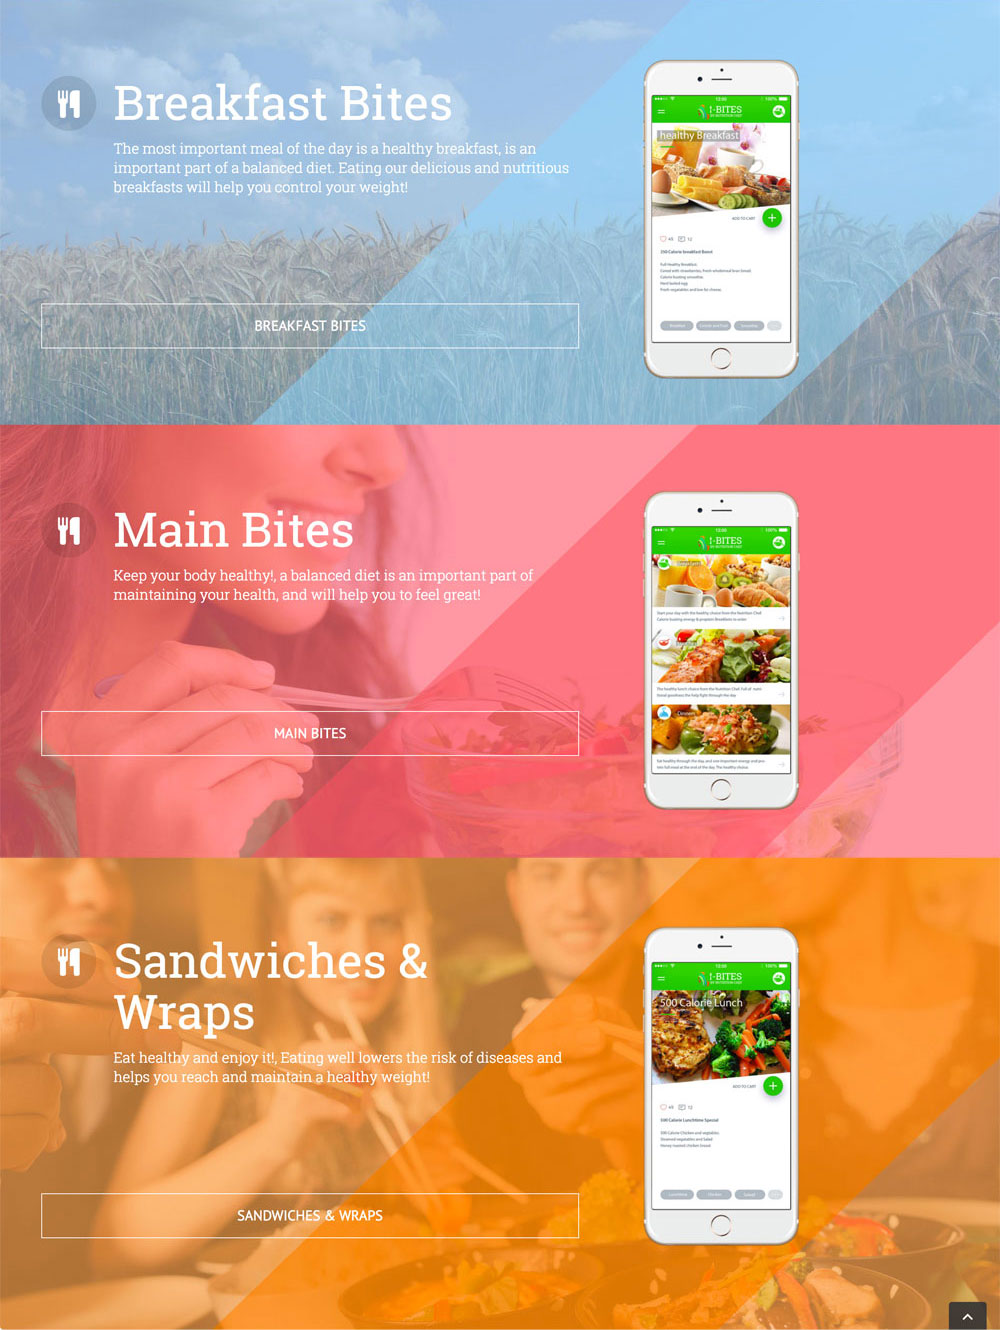 I Bites health food restaurant supply daily meal plans and lunchtime solutions for a healthy diet, marbella restaurant, healthy eating marbella